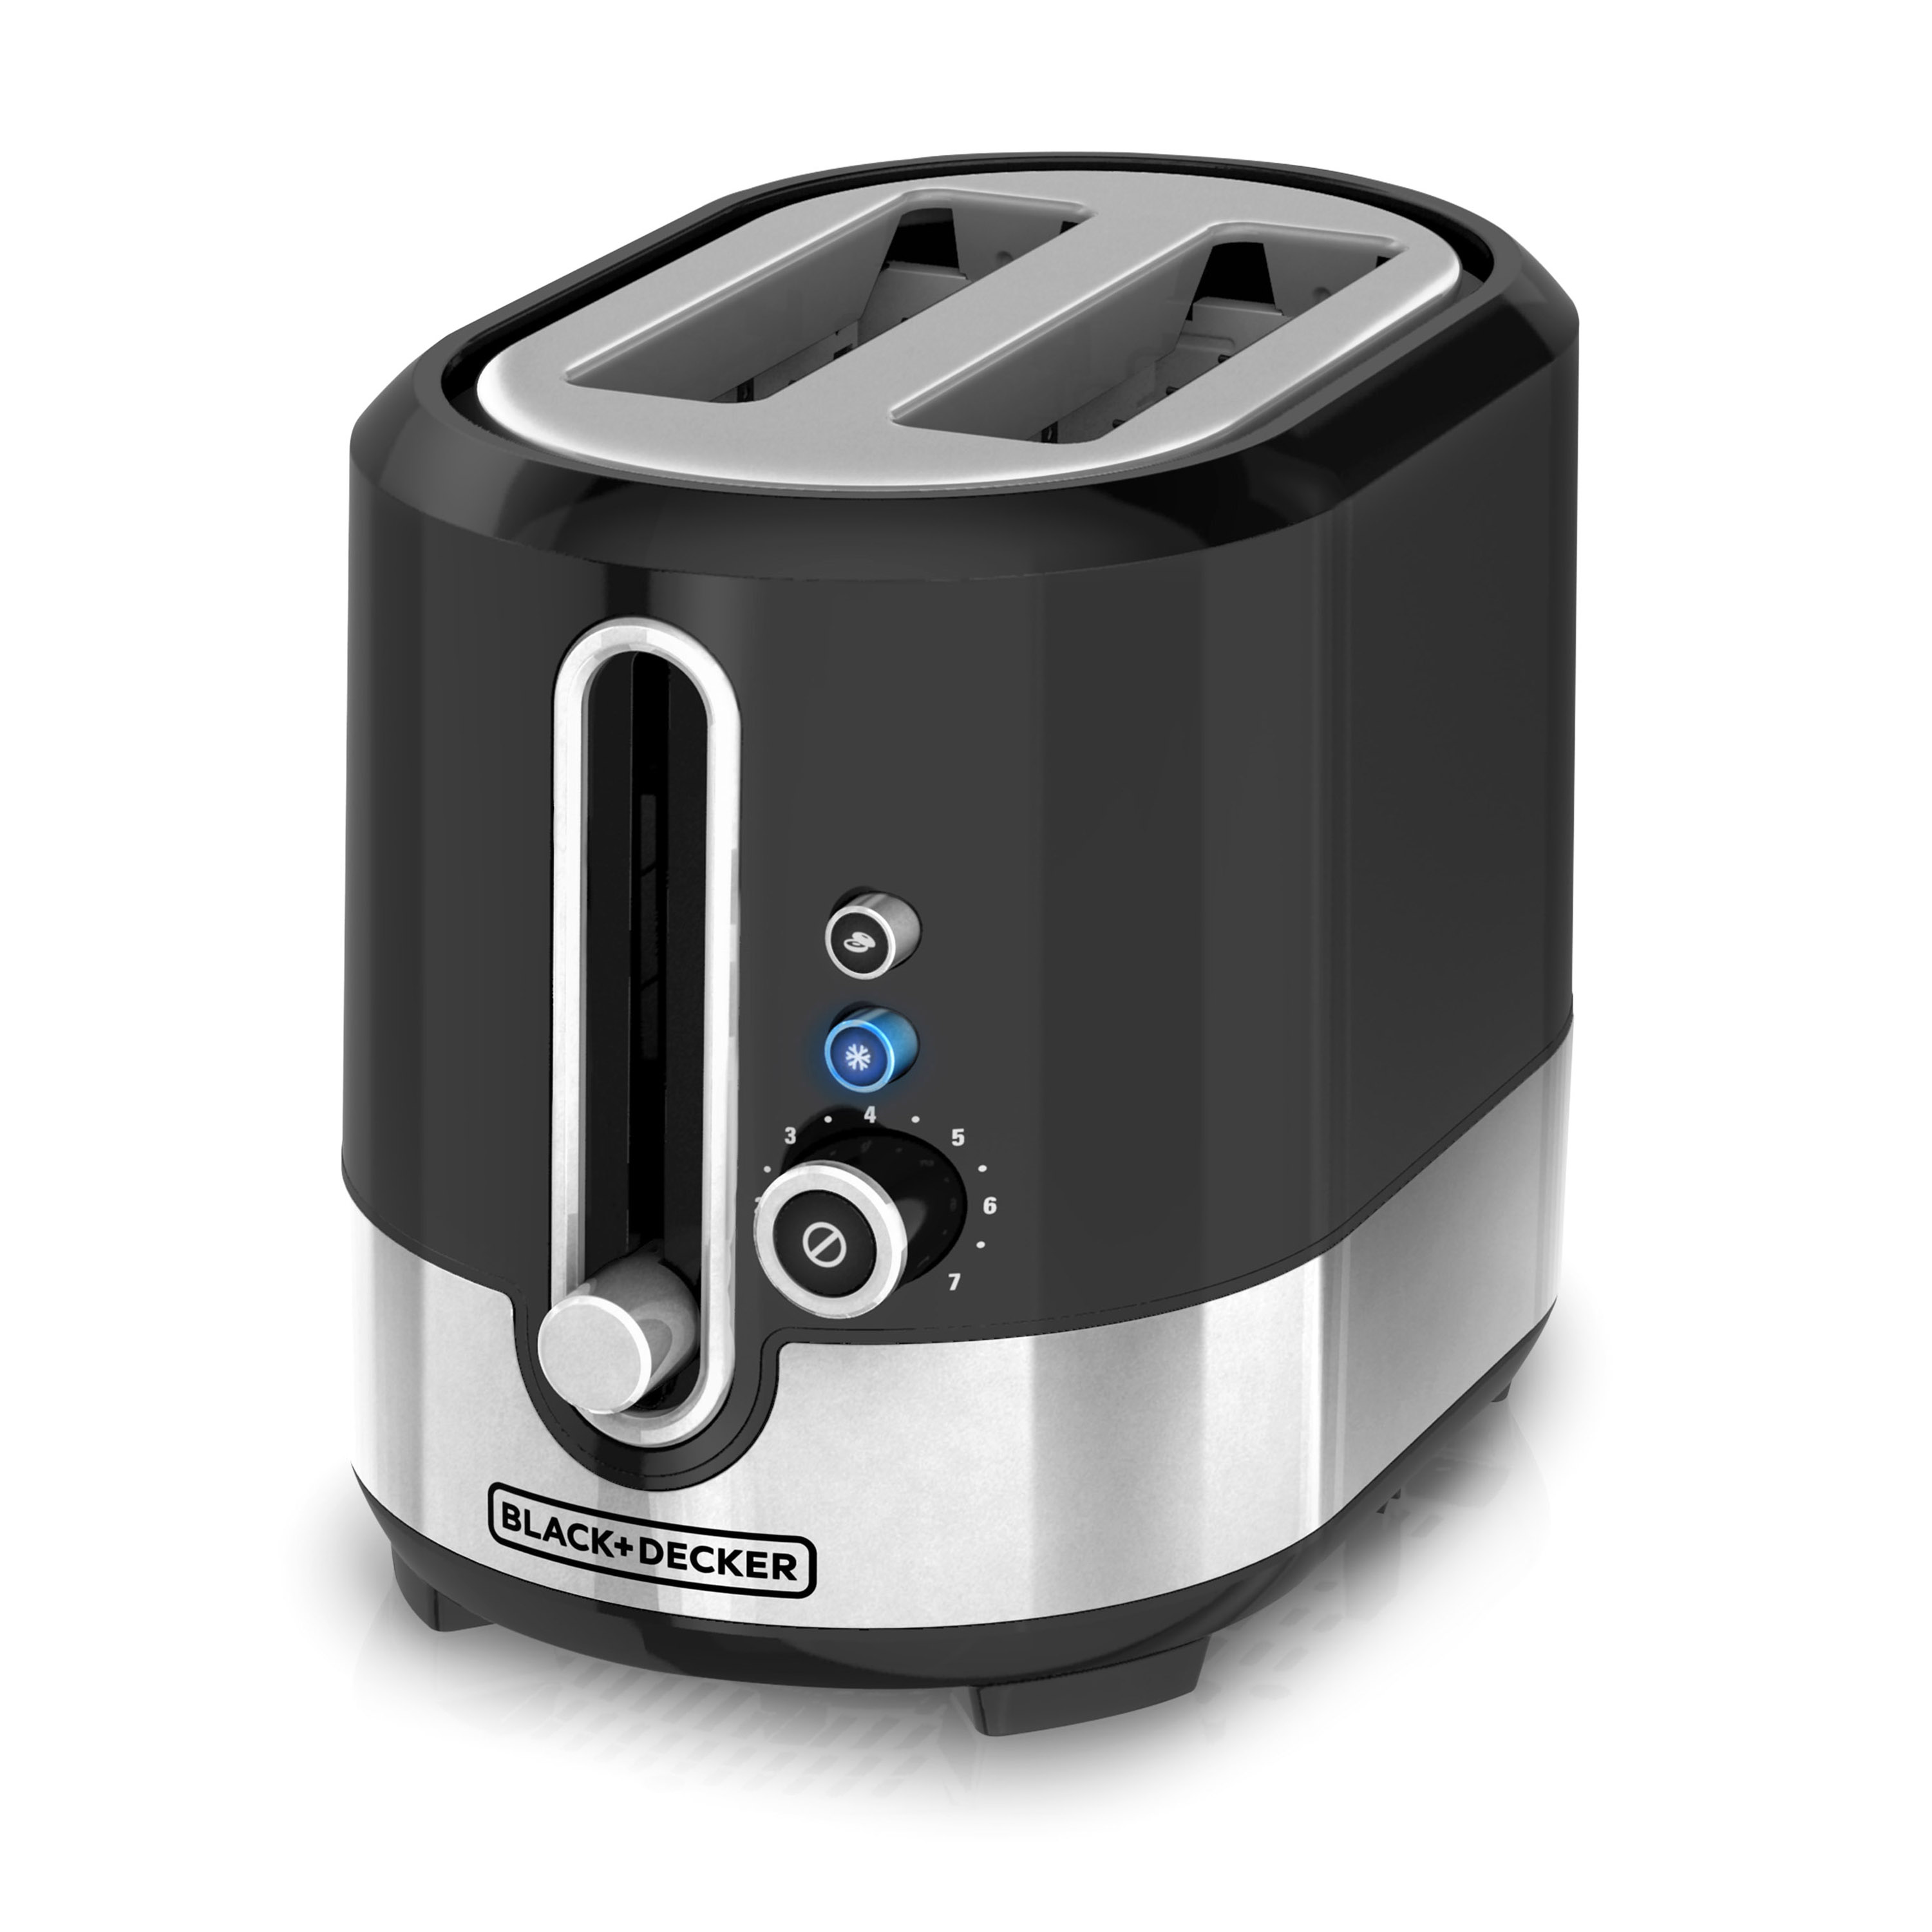 BLACK+DECKER 2-Slice Extra Wide Slot Toaster, Black/Silver, TR2200SBD